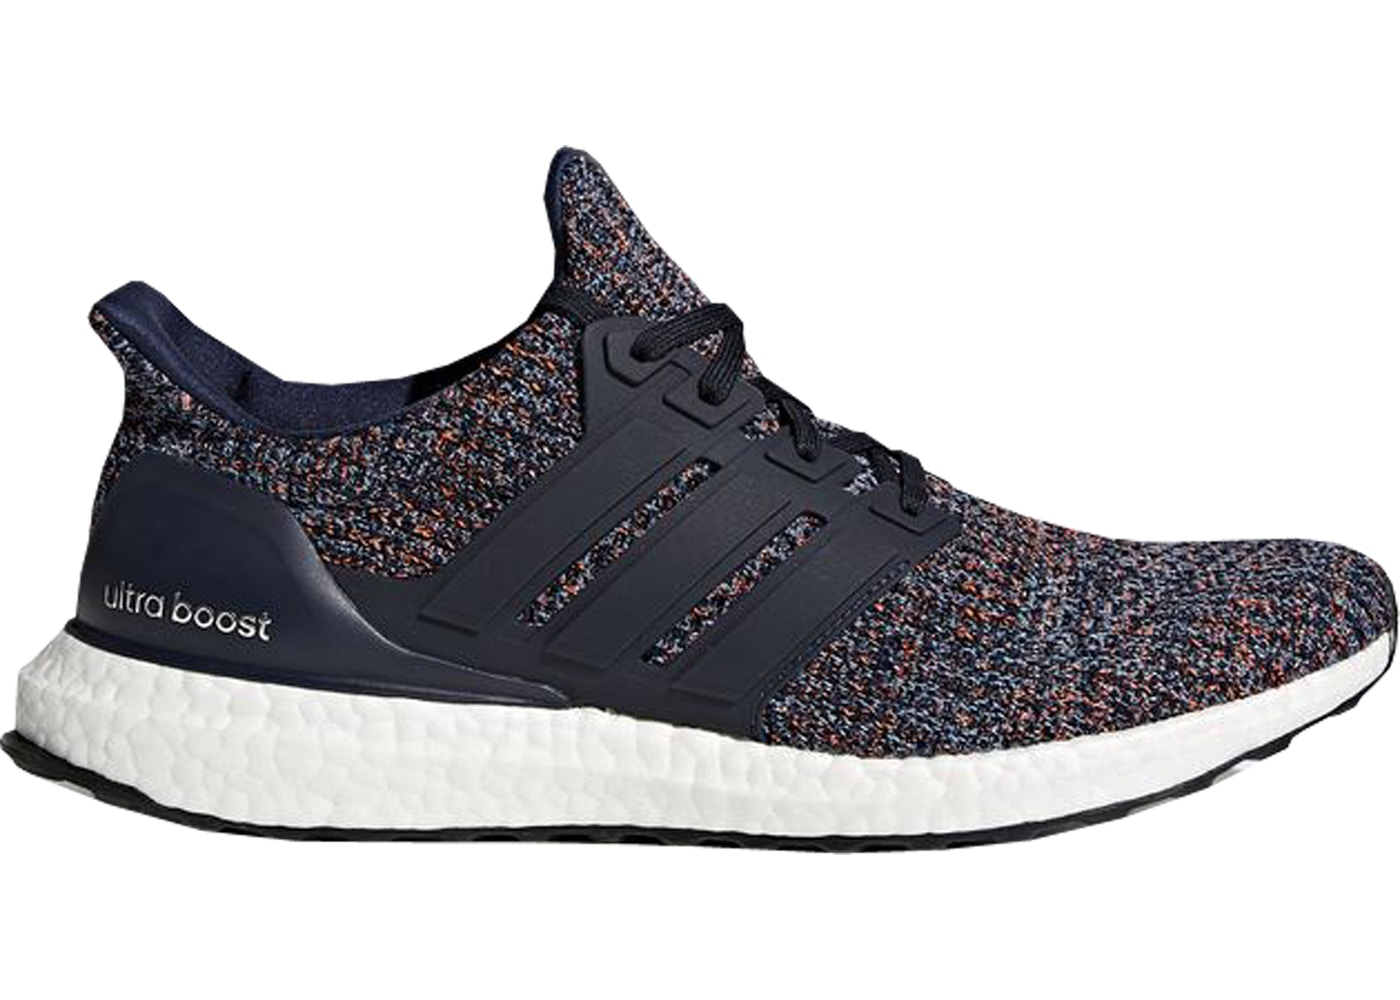 adidas Ultra Boost 4.0 Ltd Cookies and Cream Oreo Ultraboost